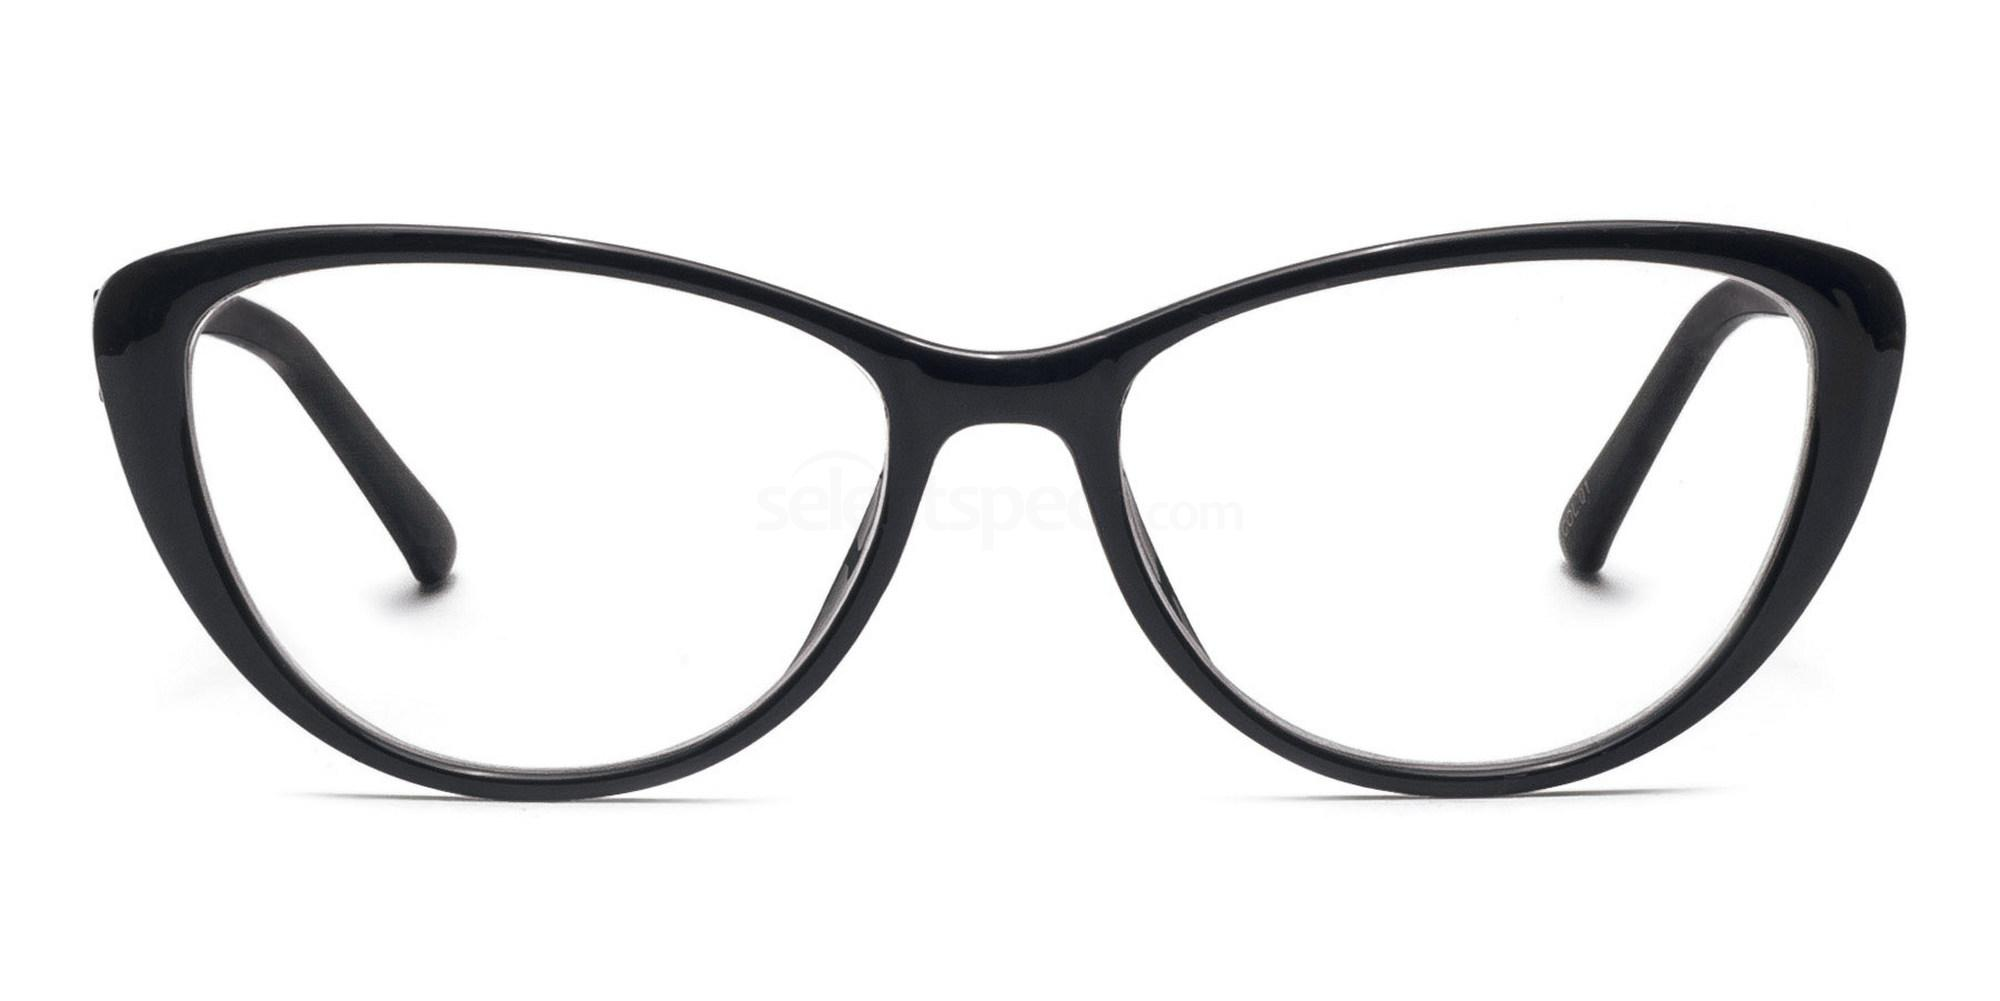 C1 2489 - Black Glasses, Savannah